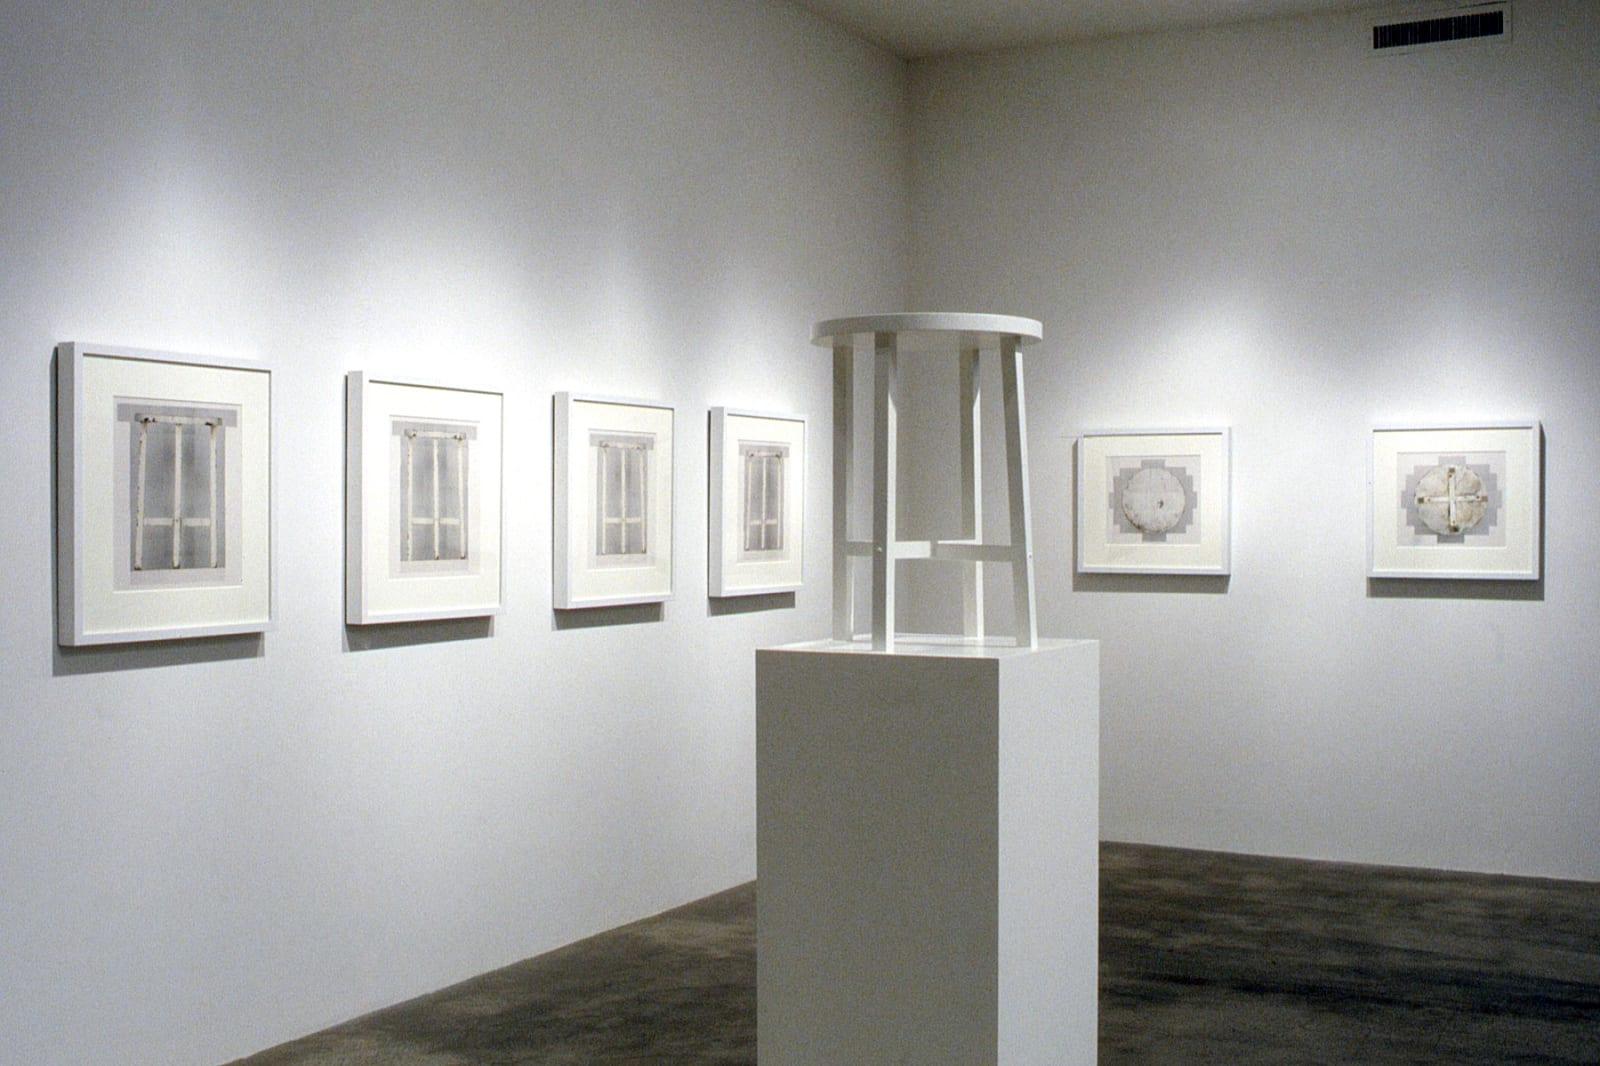 Roy McMakin | A White Table and A Black Table, Each Depicted in Photographs and Sculpture